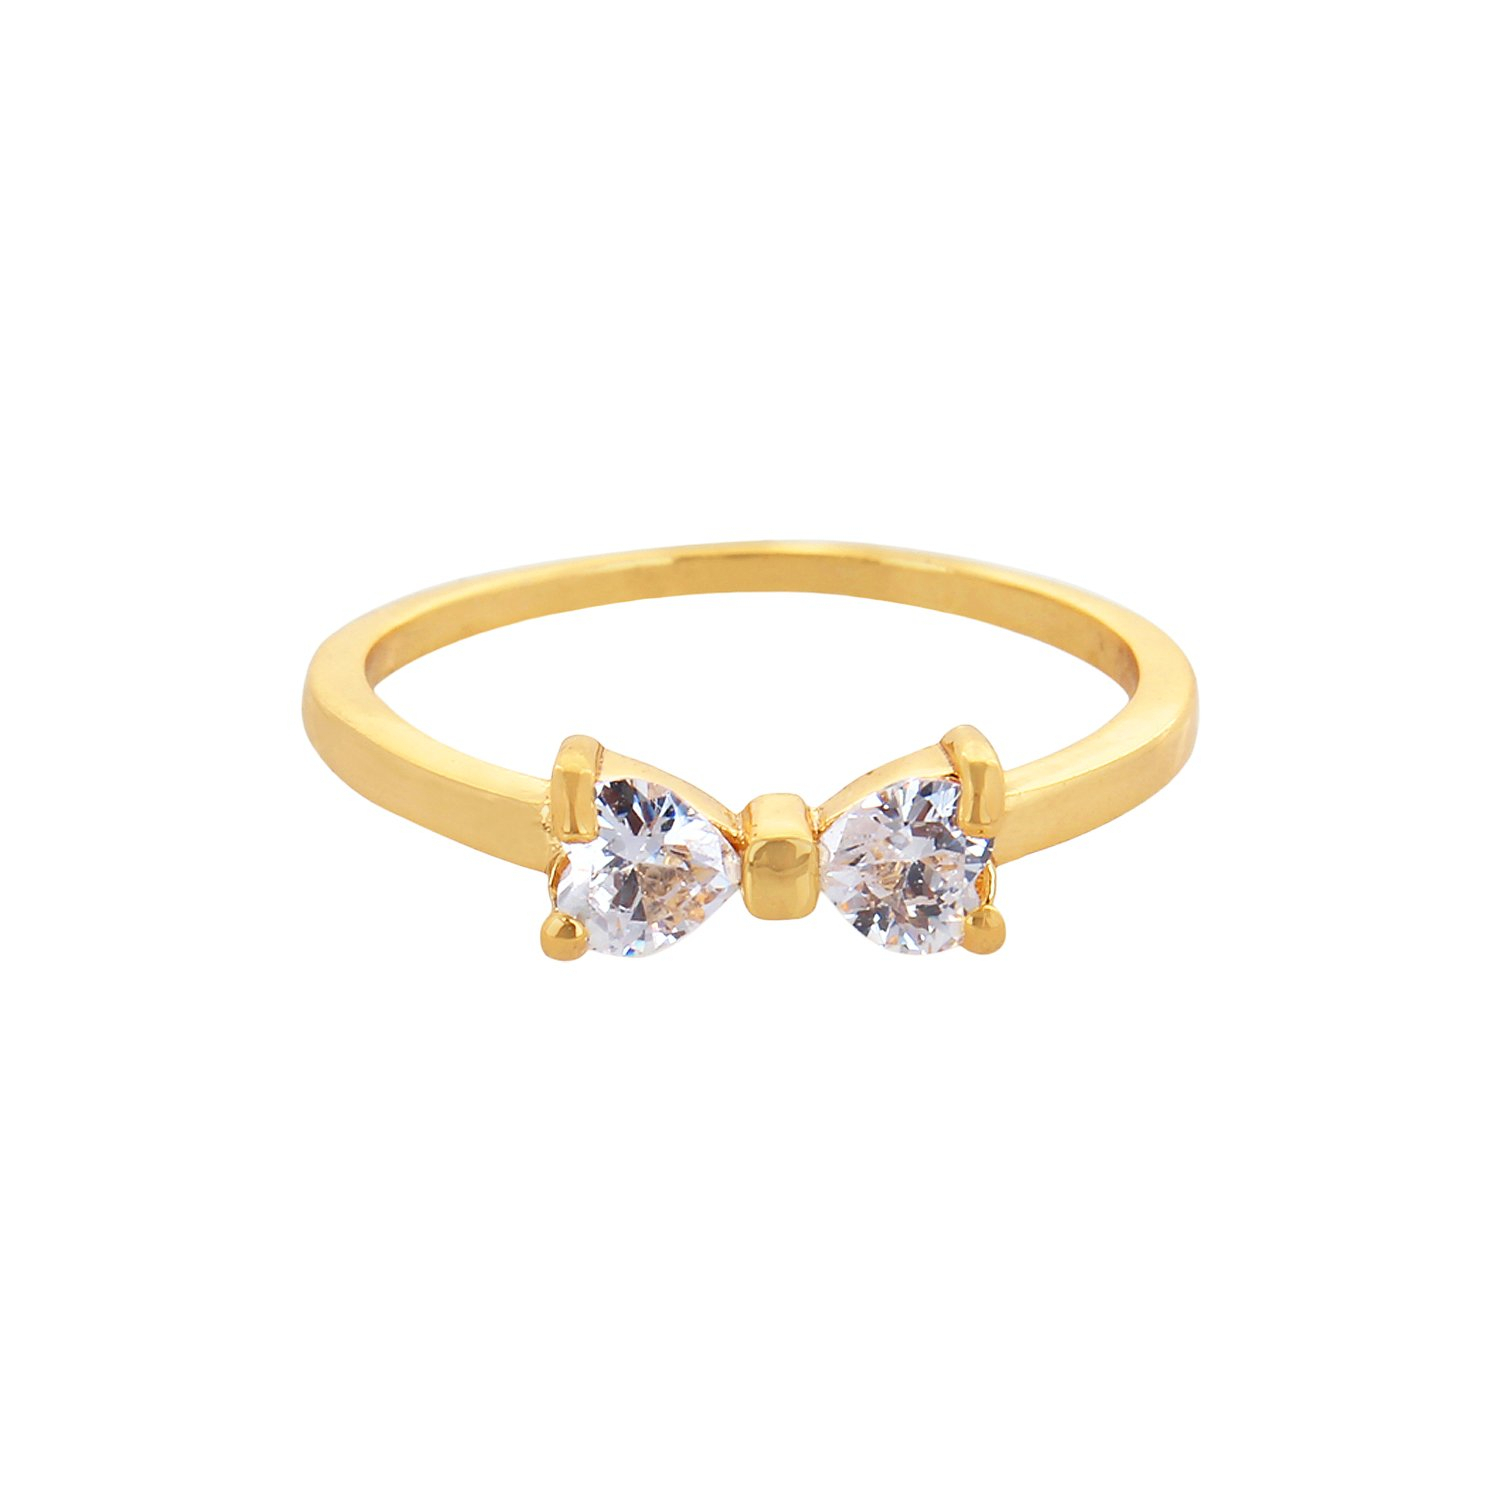 Solitaire Bow Ring Pertaining To Recent Classic Bow Rings (View 11 of 25)